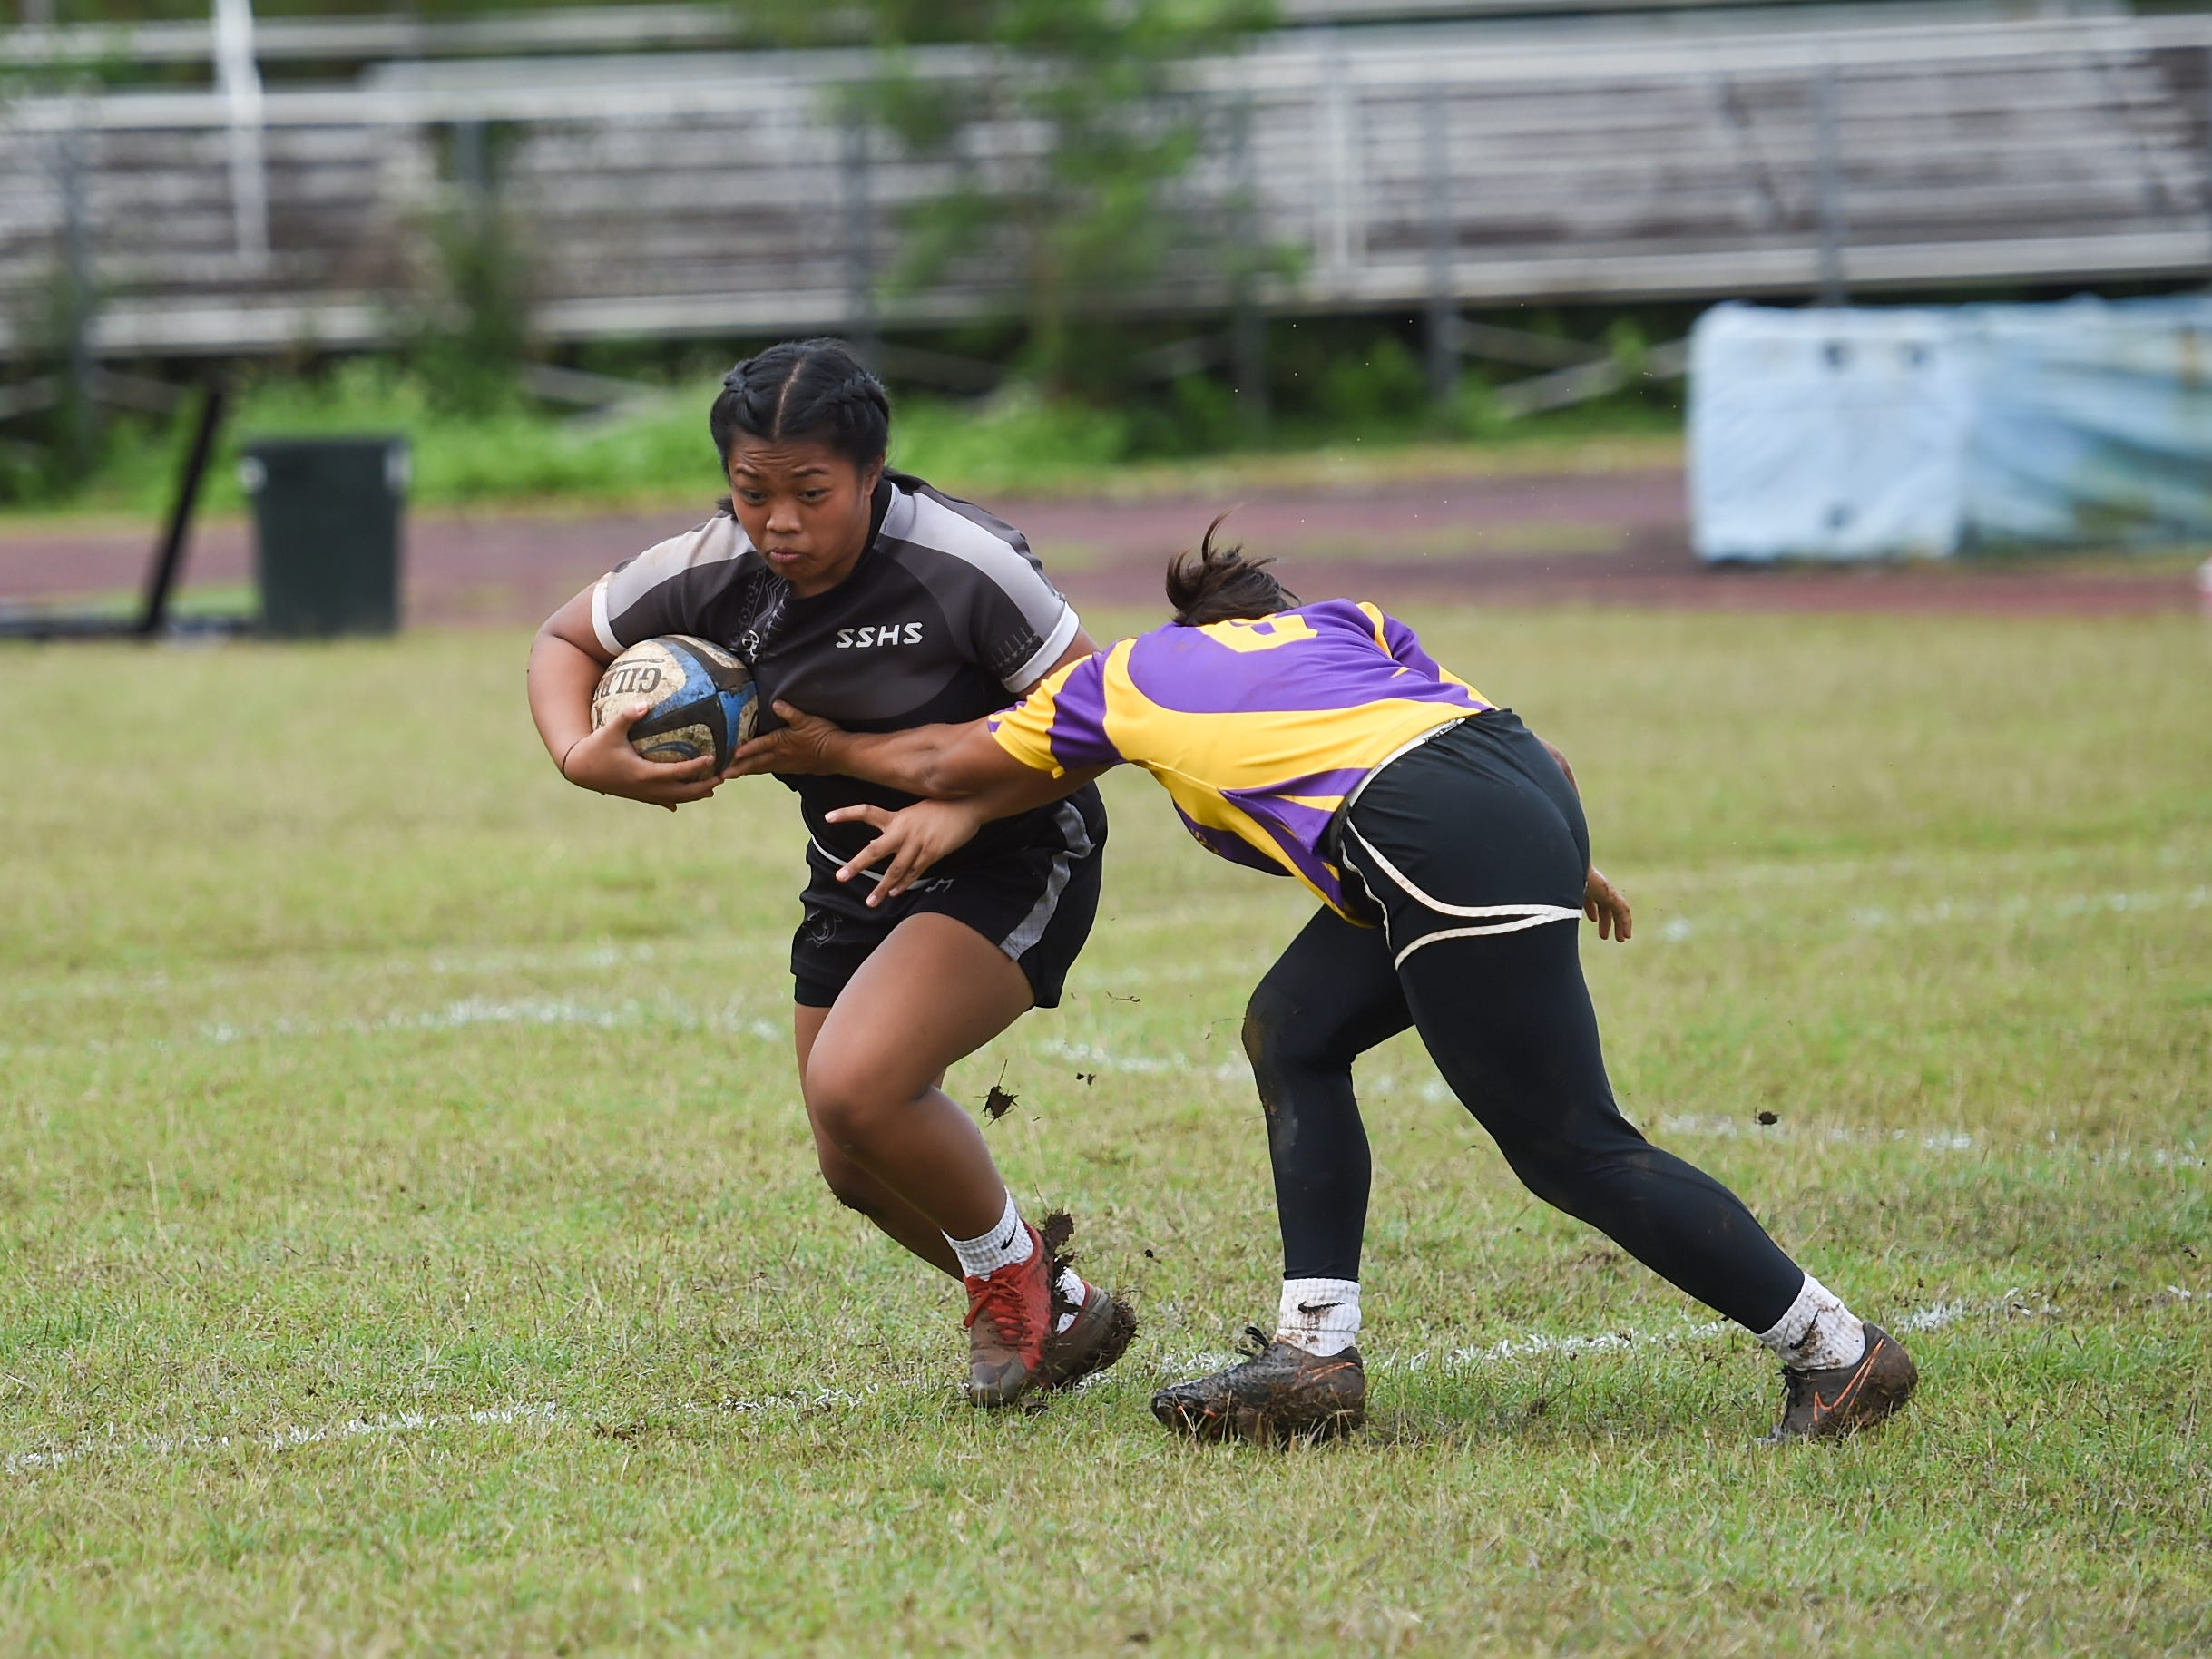 Simon Sanchez player Joanne Alvarez attempts to push through a tackle by a George Washington player during their IIAAG Girls' Rugby match at the Southern High School Field, Feb. 9, 2019.